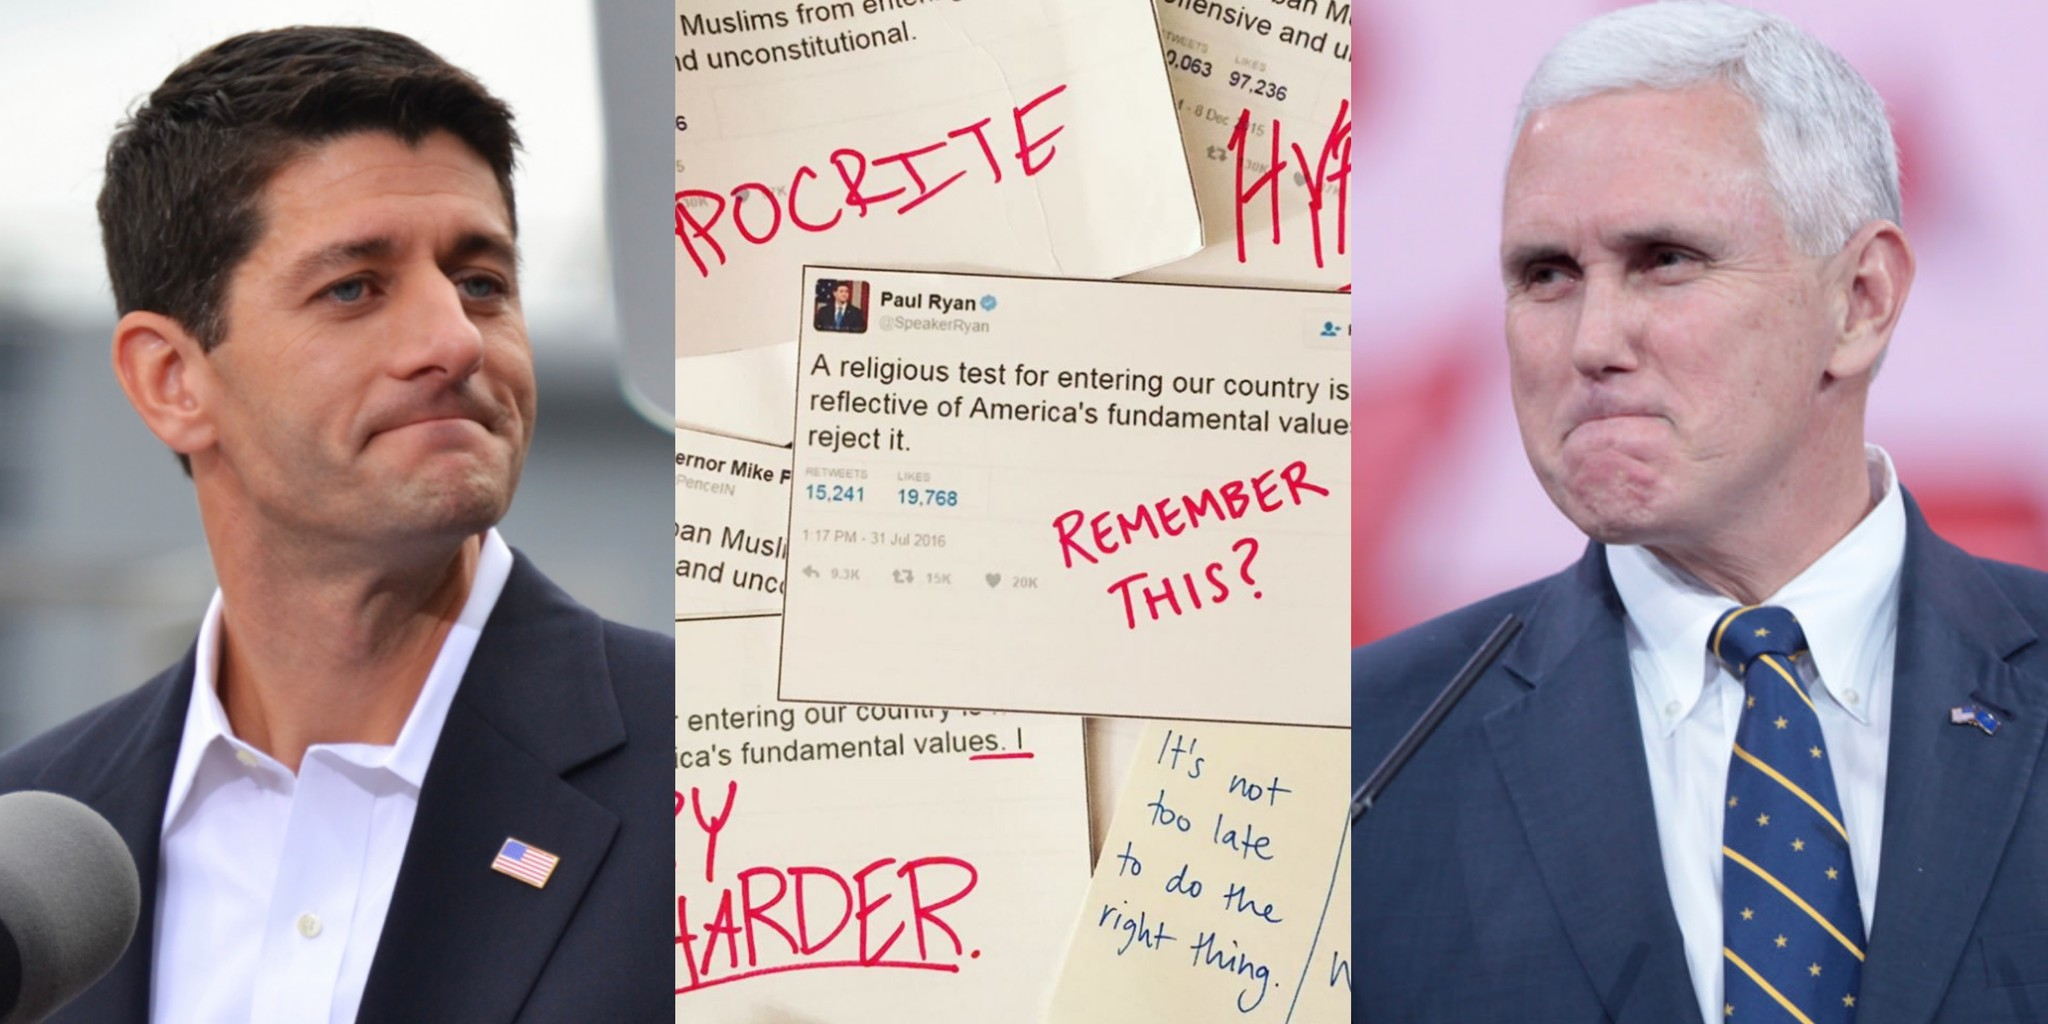 Paul Ryan Mike Pence Hypocticial Tweets